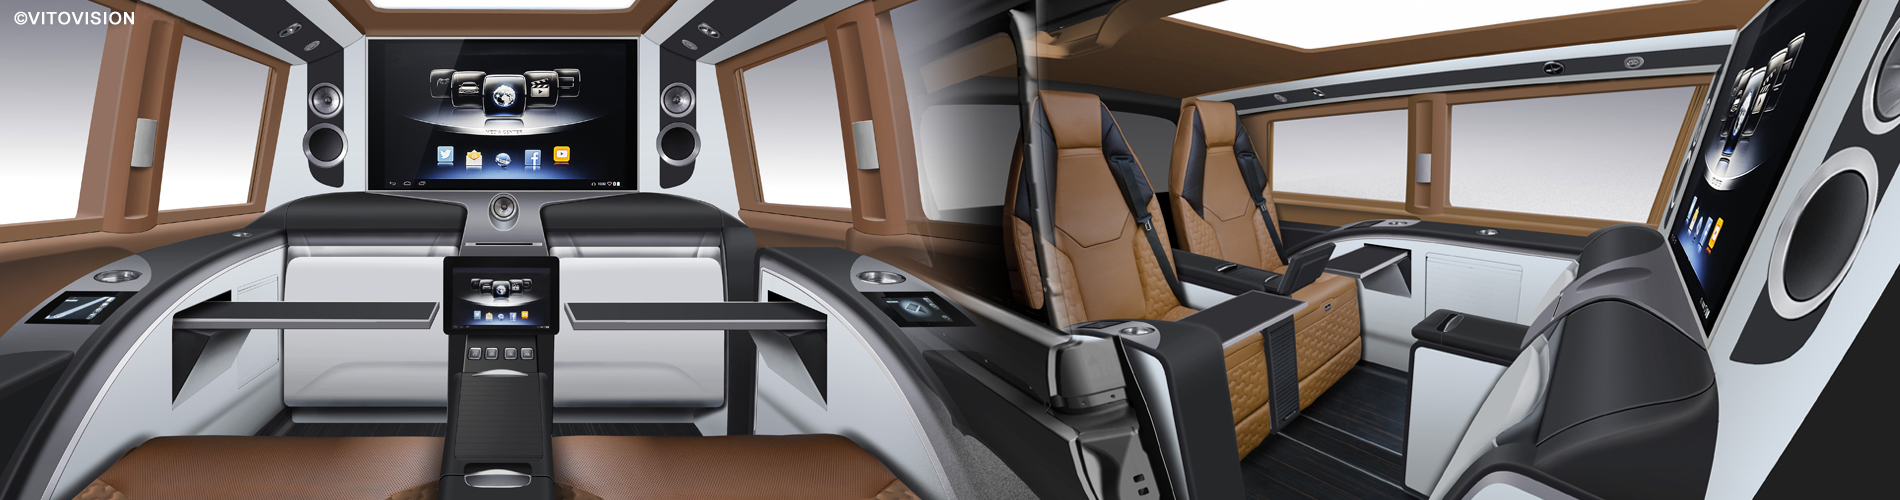 Challenging interior design for the automotive and transportation sector from Vitovision